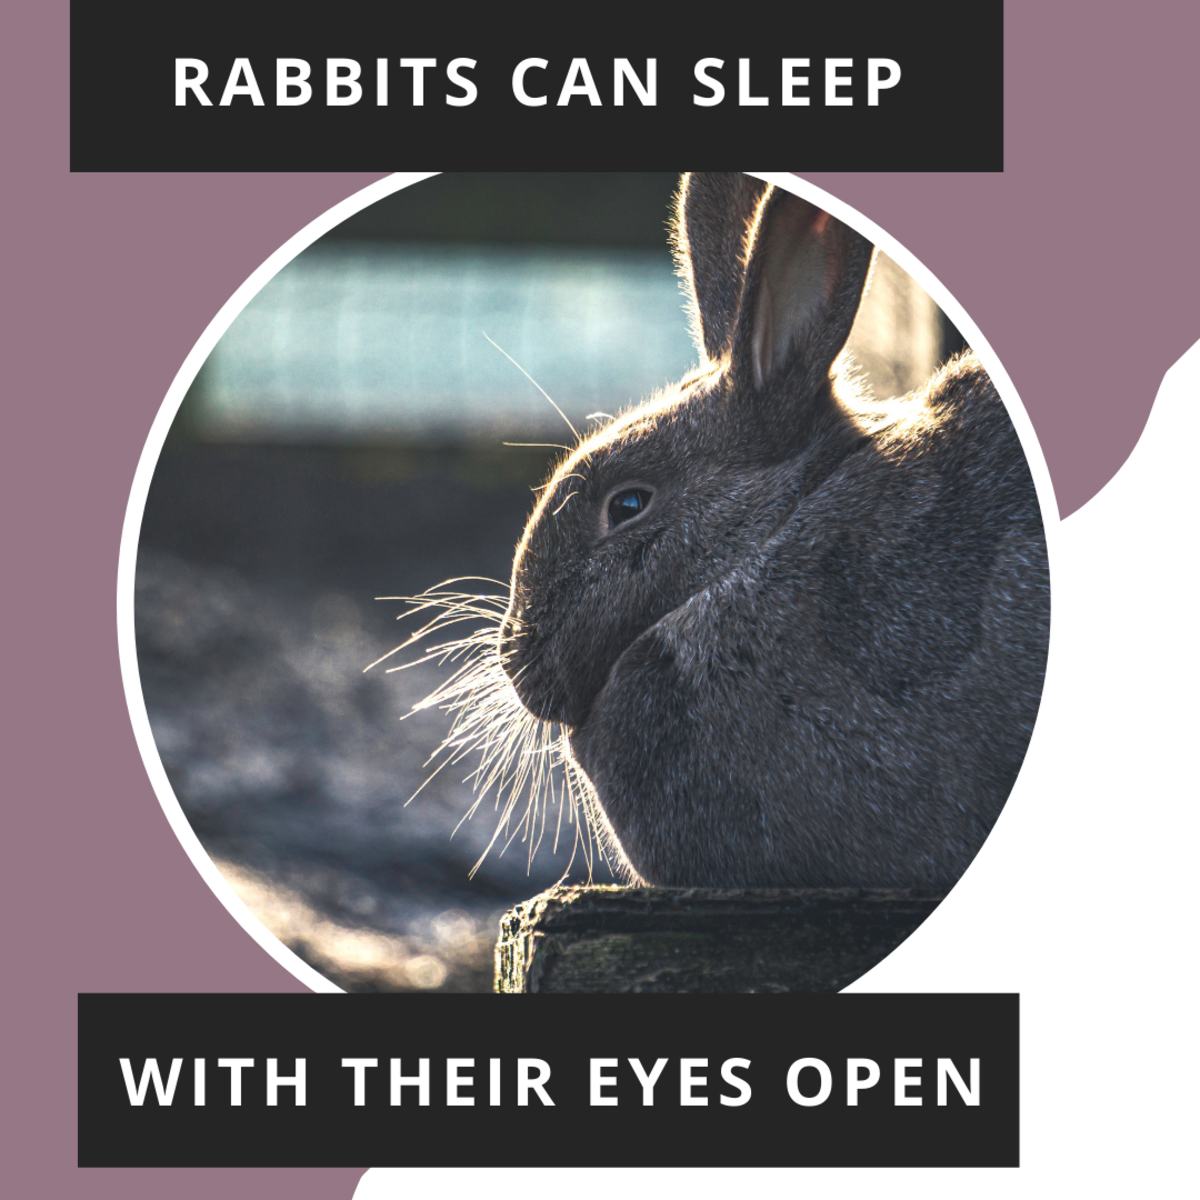 Rabbits are able to sleep with their eyes open.